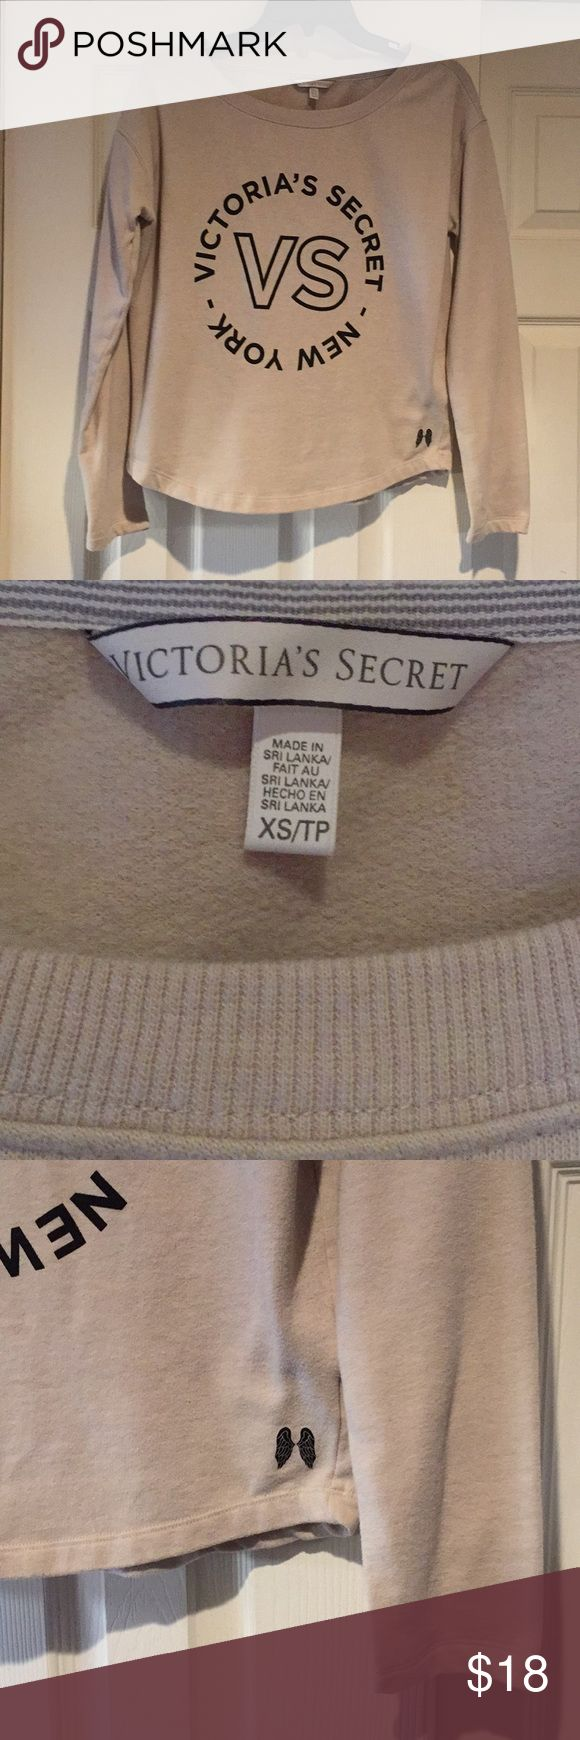 VICTORIA'S SECRET BEIGE NEW YORK SWEATSHIRT  Beige super soft Victoria's Secret sweatshirt. Black lettering centered on the front of the sweatshirt. Size Extra Small.  Bottom of sweatshirt has a curved shaped. See pictures  Victoria's Secret Tops Sweatshirts & Hoodies